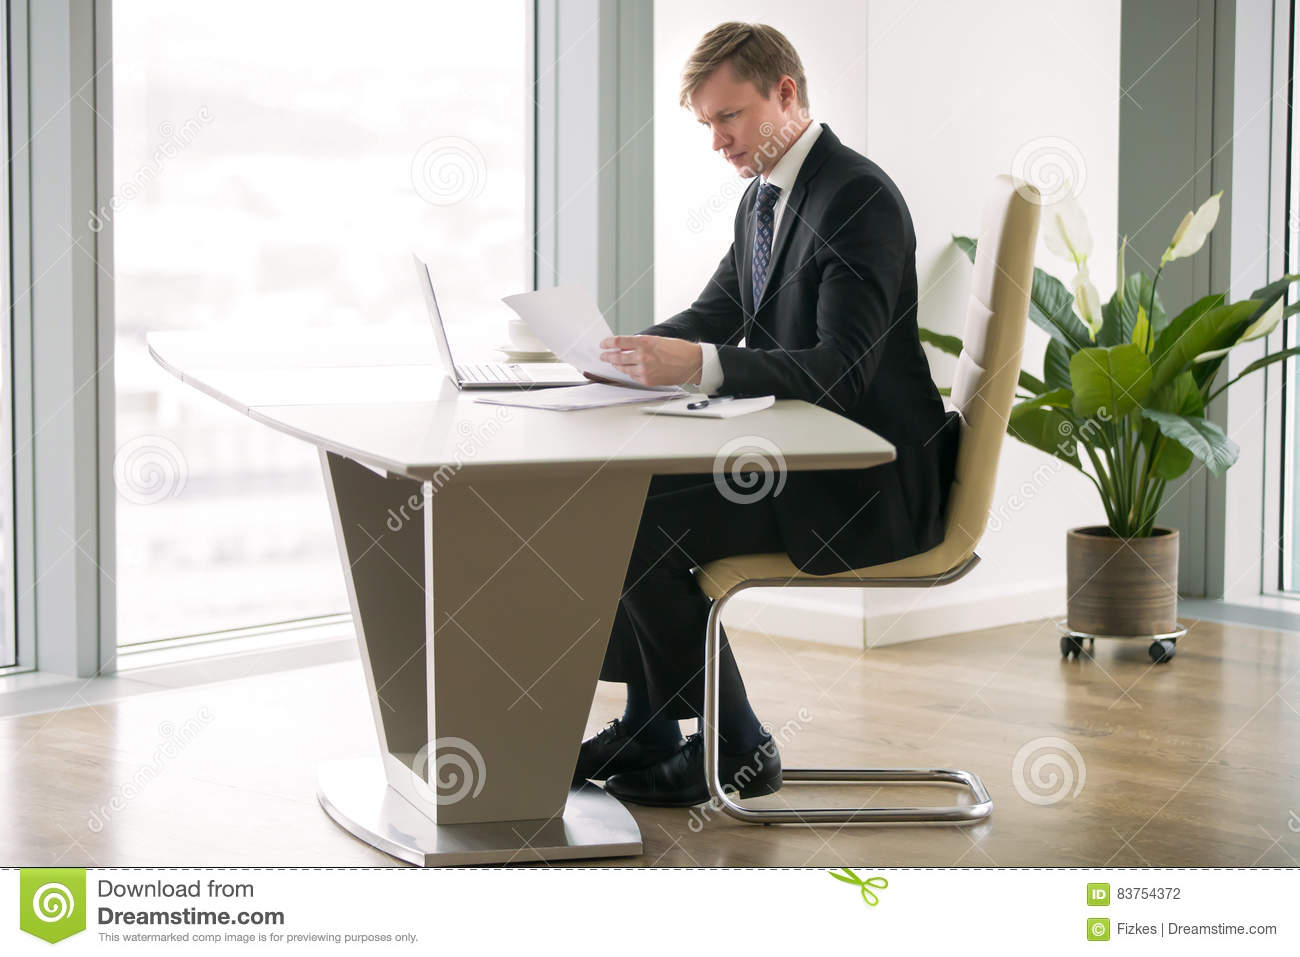 Businessman working with laptop and paper at the modern desk